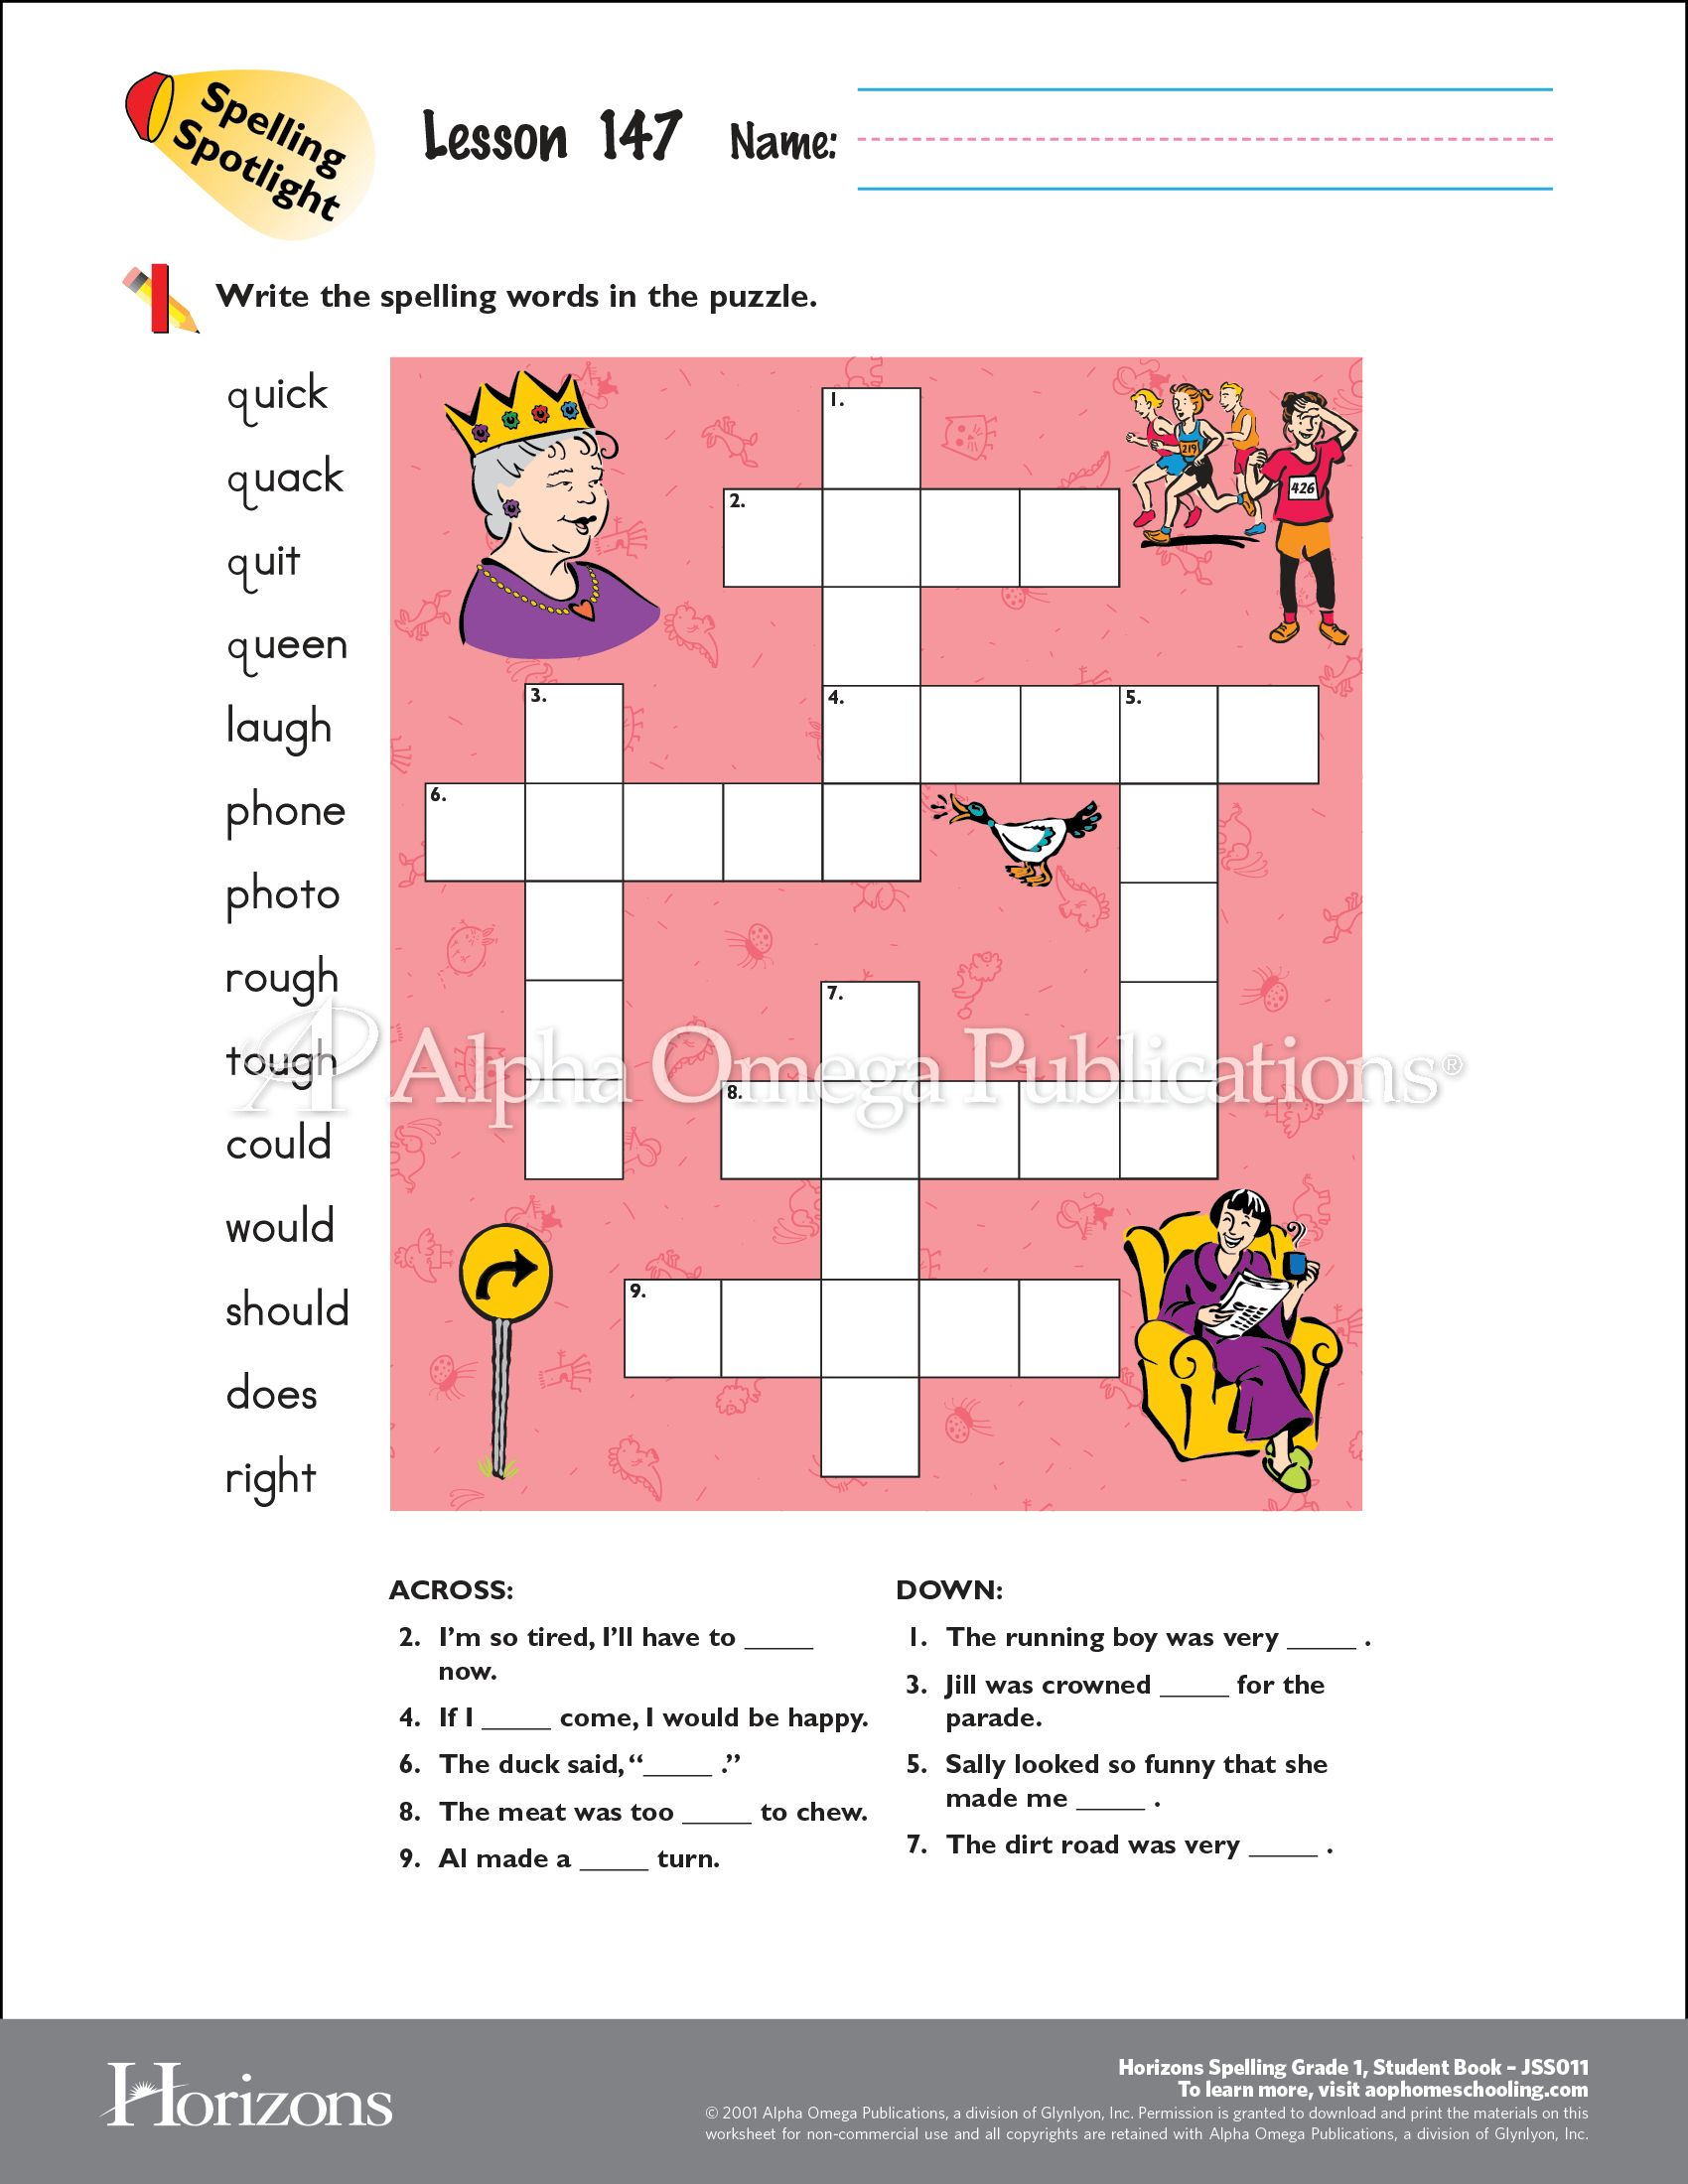 worksheet Curriculum Worksheet download and print this curriculum worksheet sample page from alpha omega publications horizons spelling